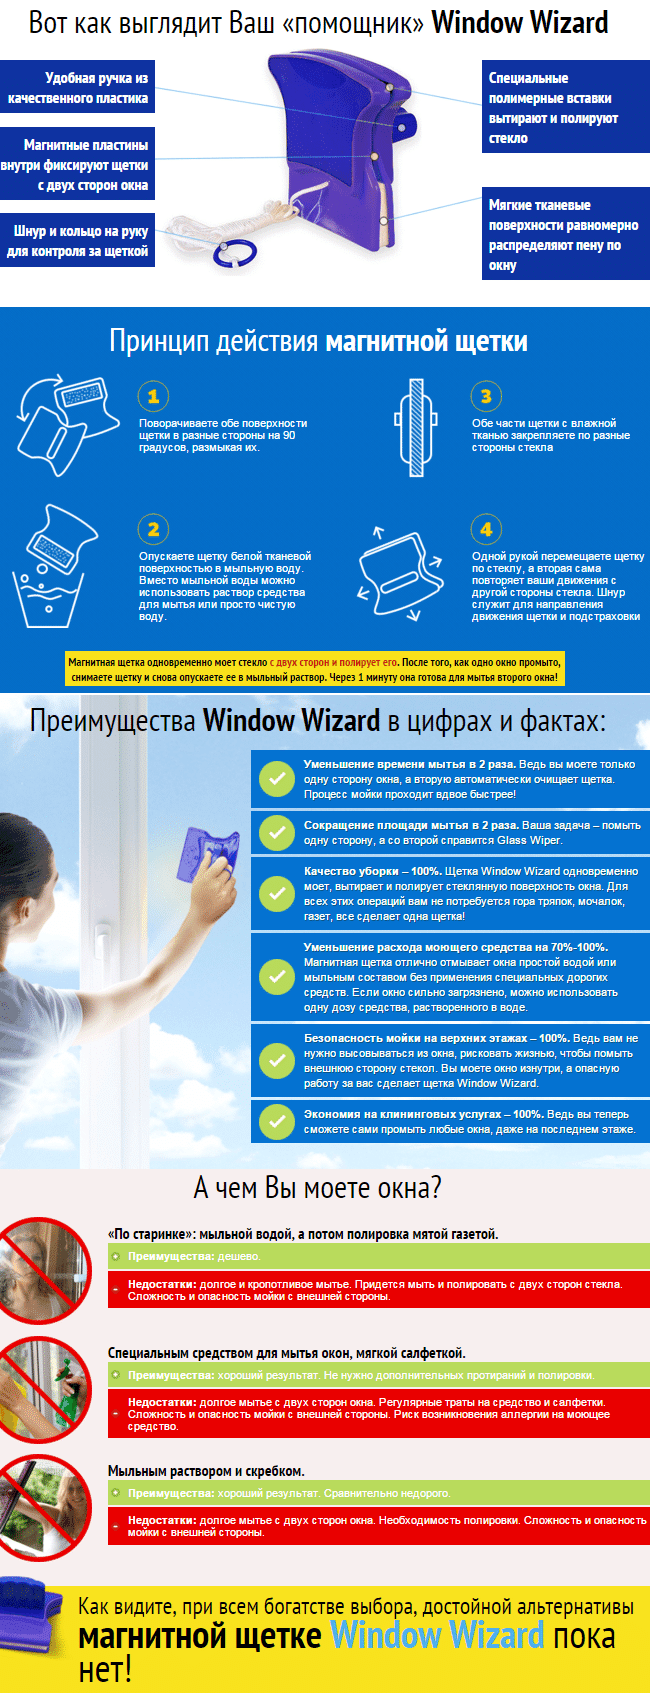 Щетка Window Wizard для мытья окон - фото щетка Window Wizard купить